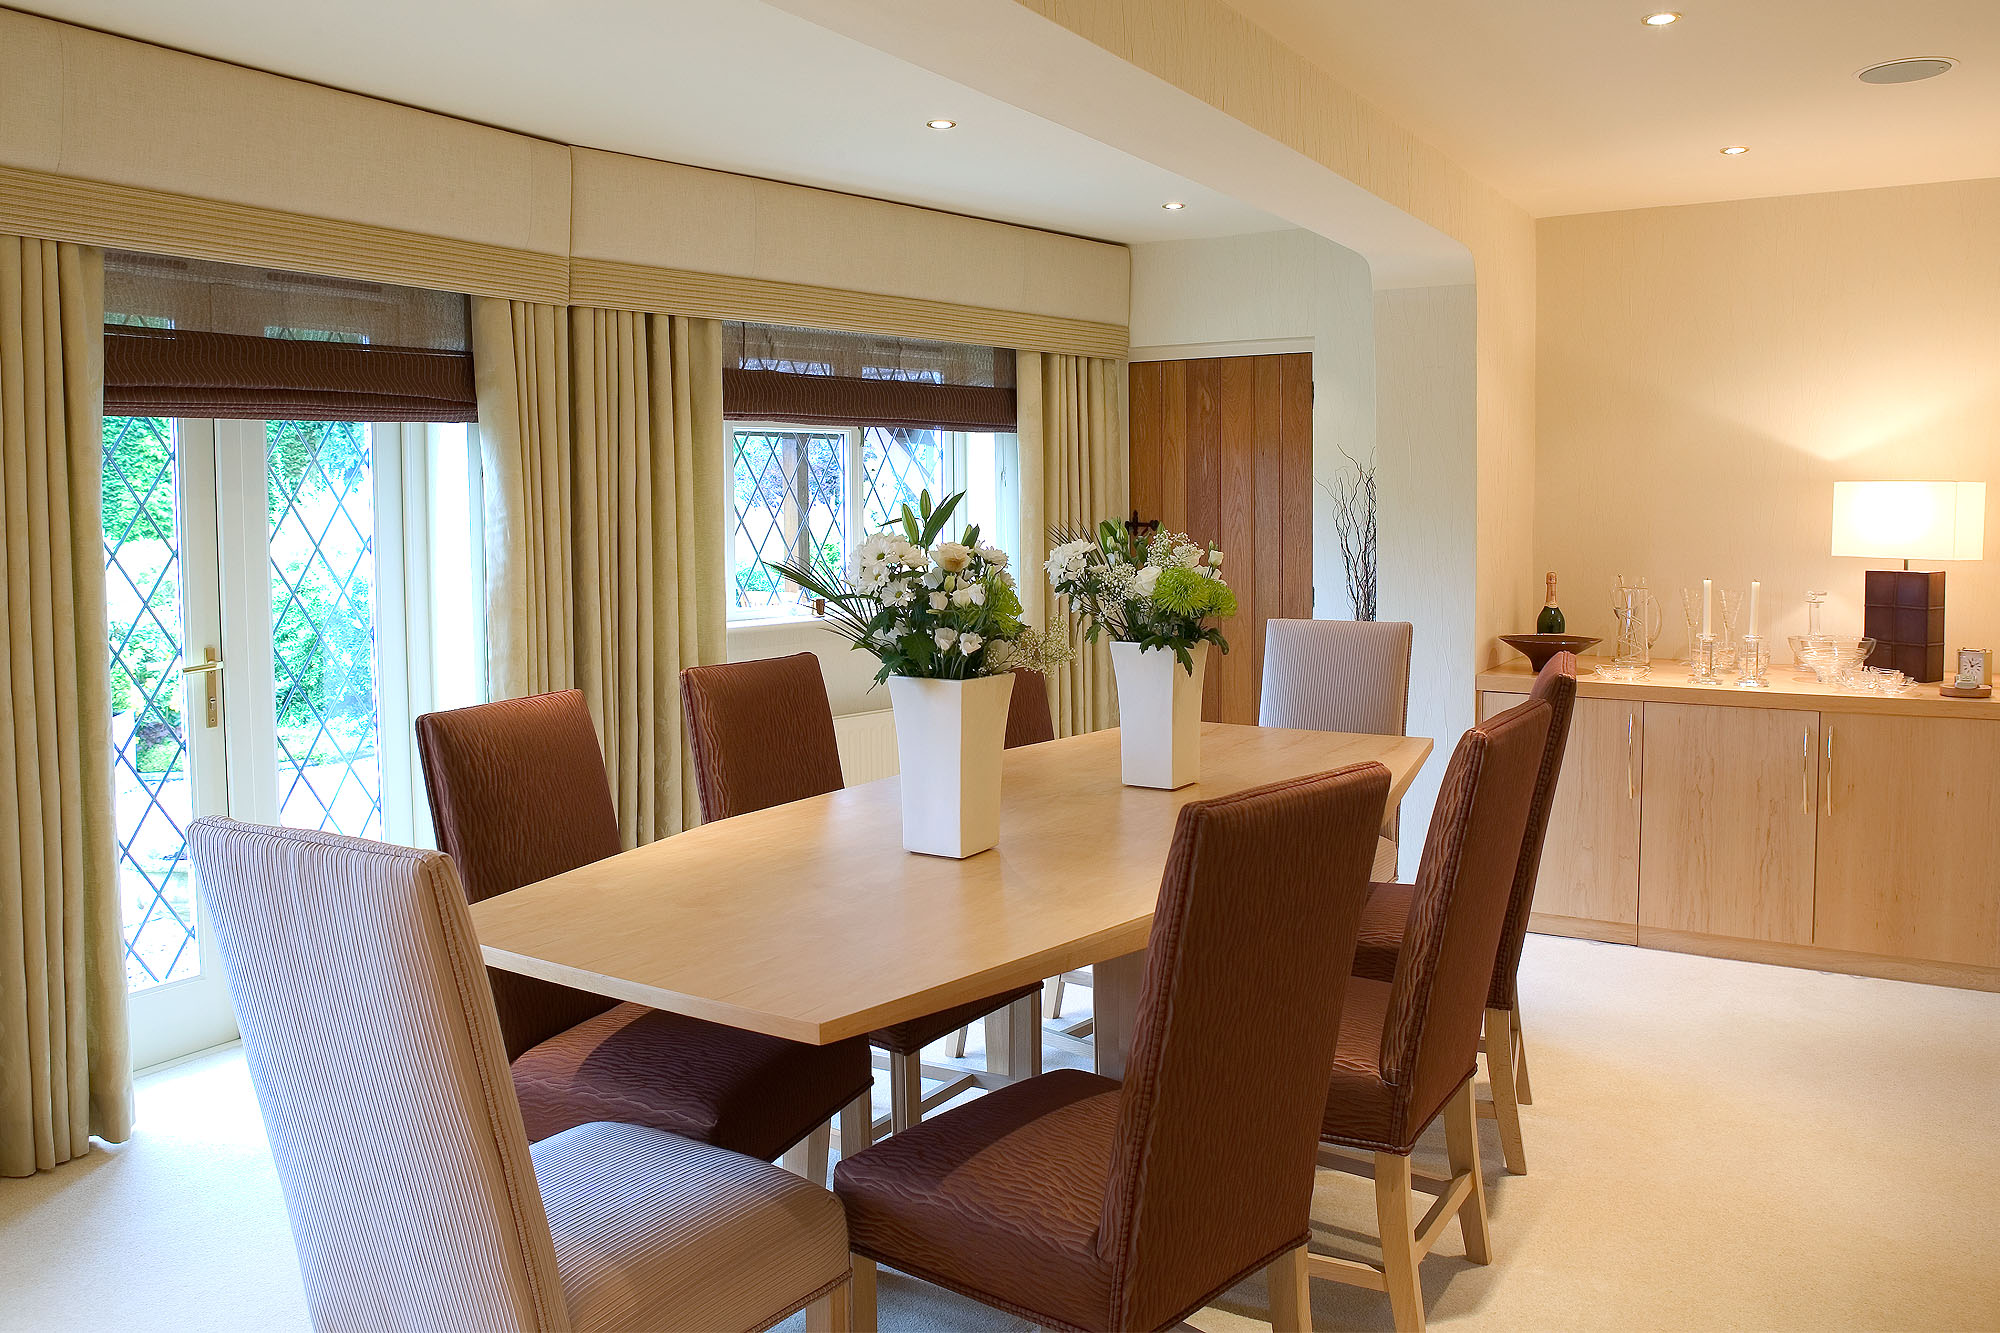 Elegant clean lined dining room with gentle curves, cool tones and lighter wood furniture. Fitted pelmets and contemporary table lamp.